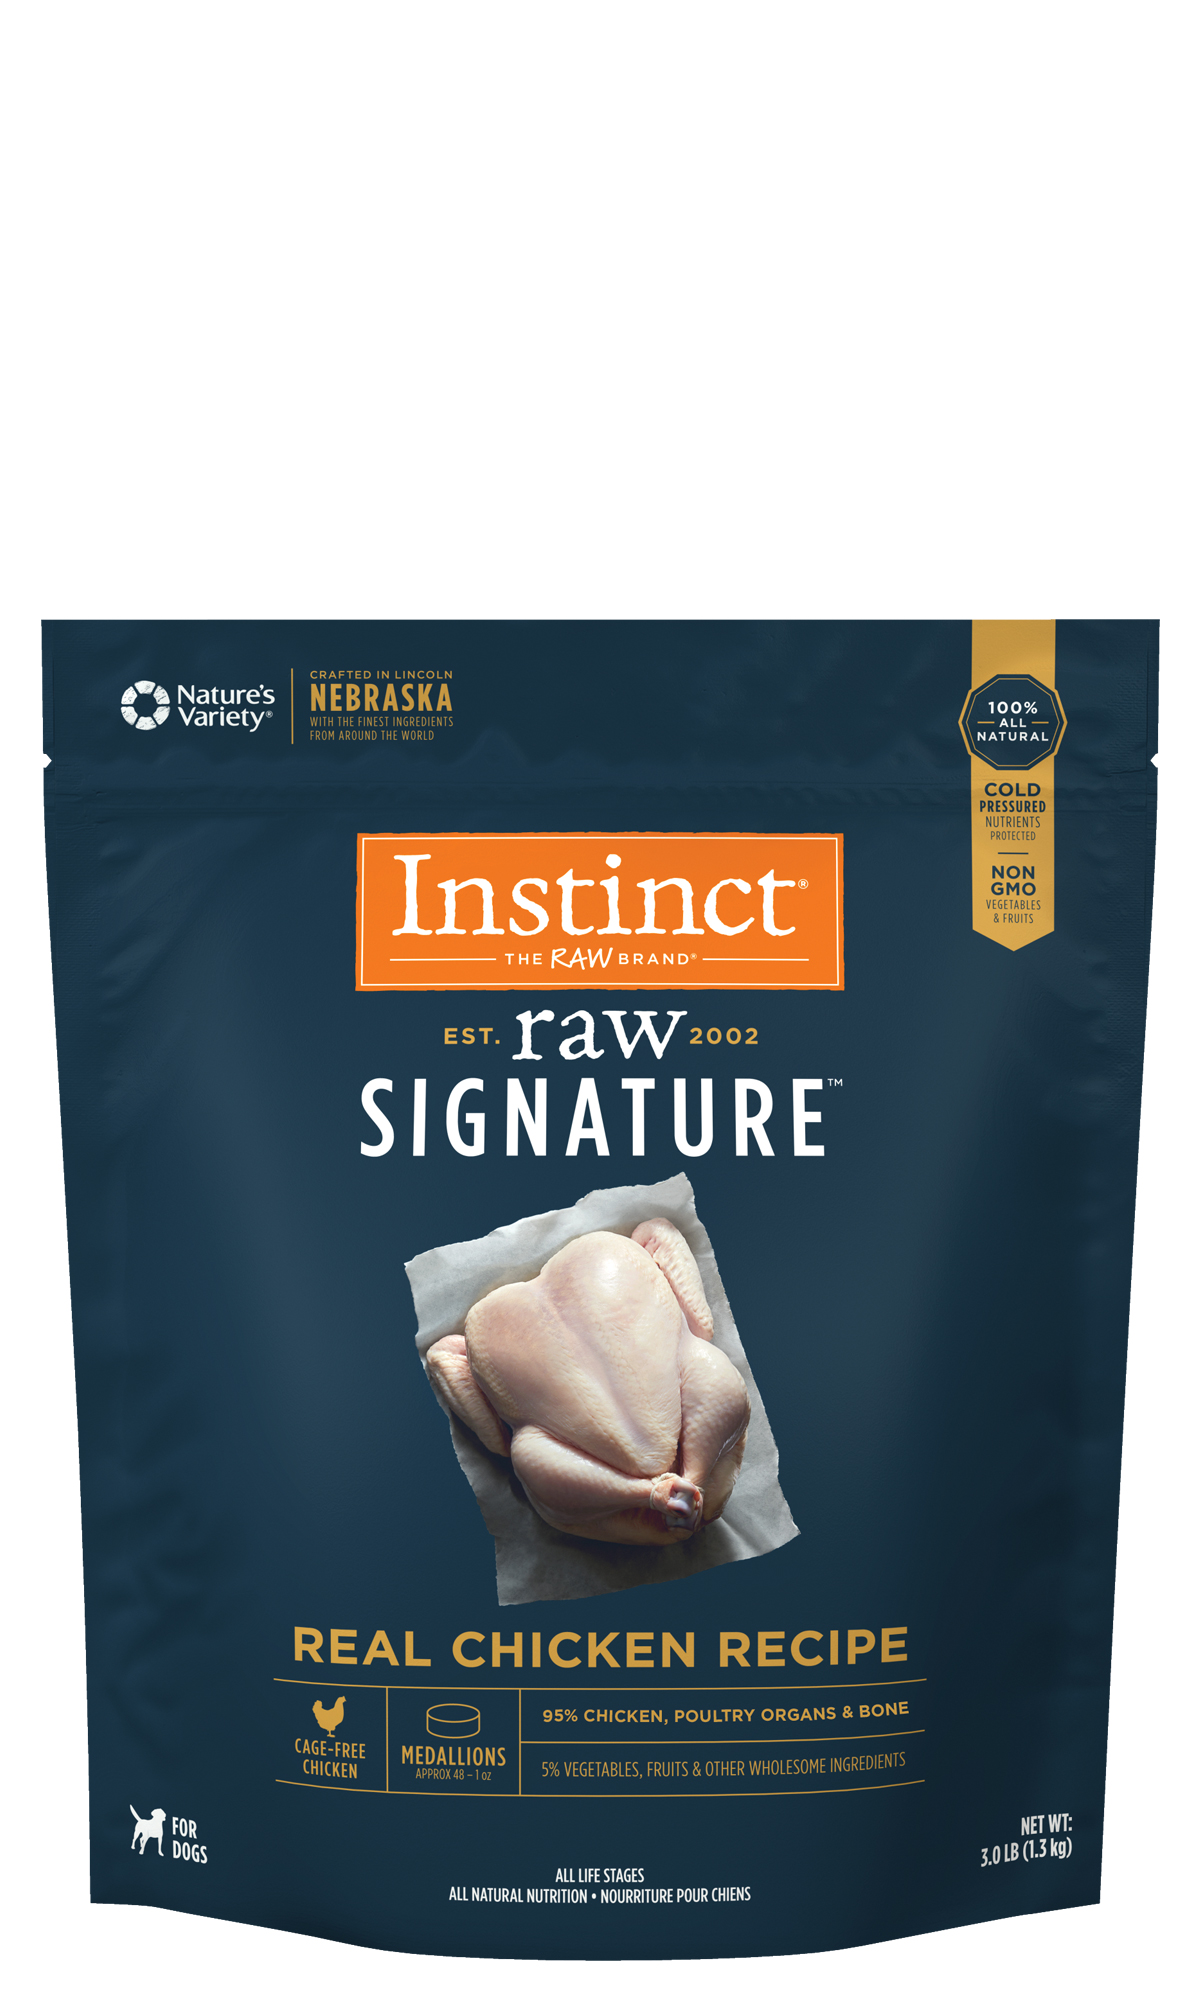 Nature's Variety Instinct Raw Signature Real Chicken Recipe Frozen Medallions Dog Food, 3-lb